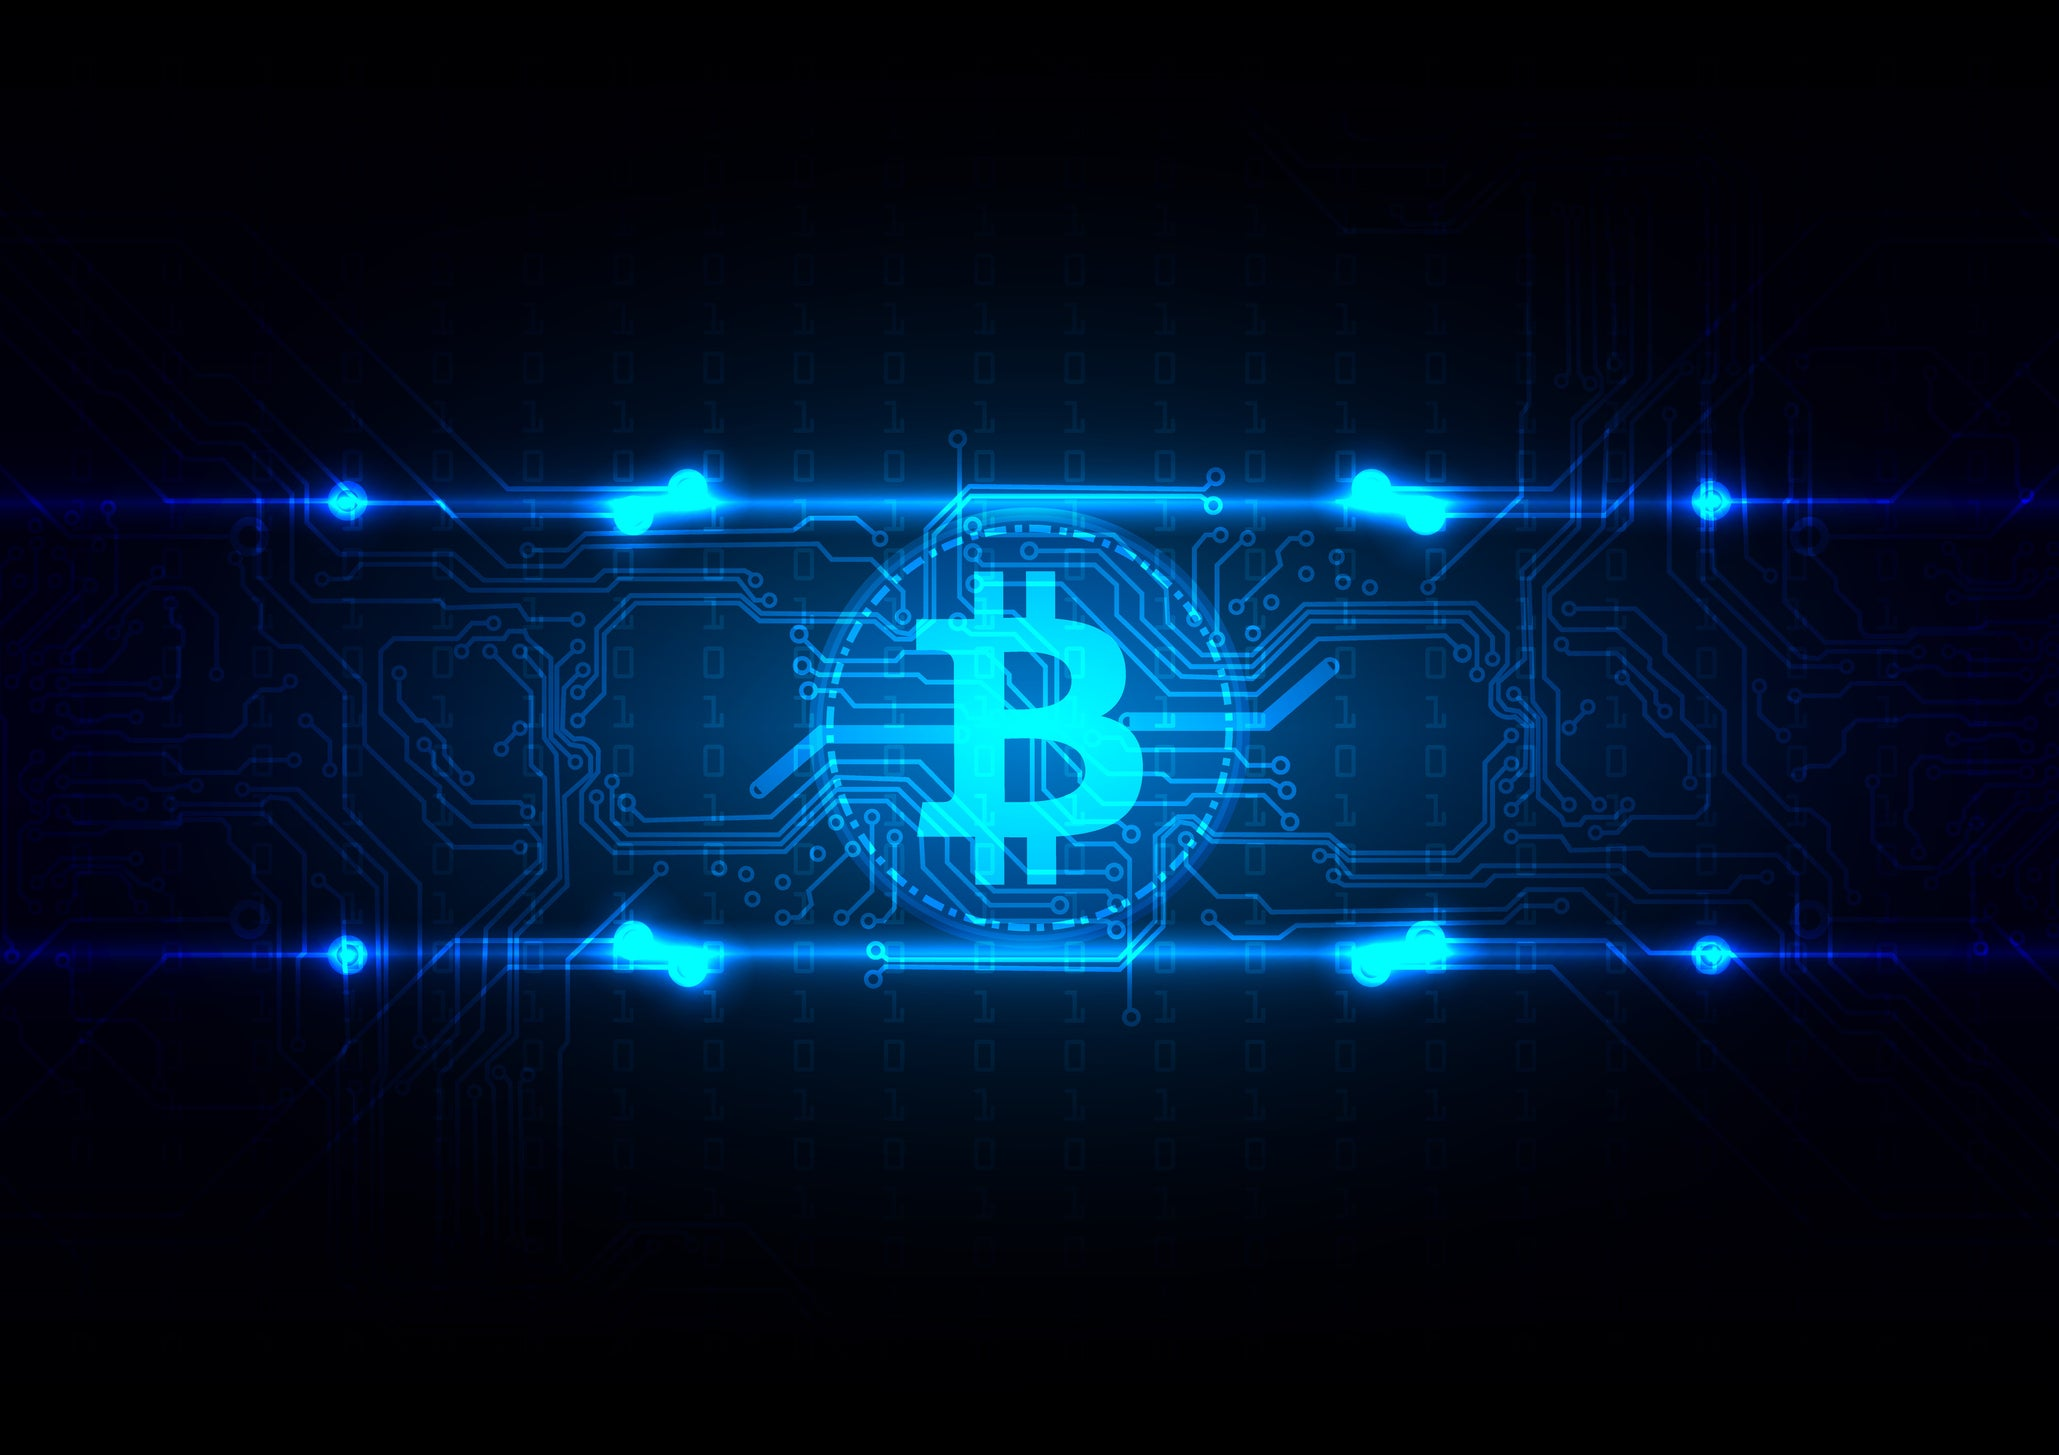 Bitcoin: Digital Token, does it Require Explosives or Panoramic?